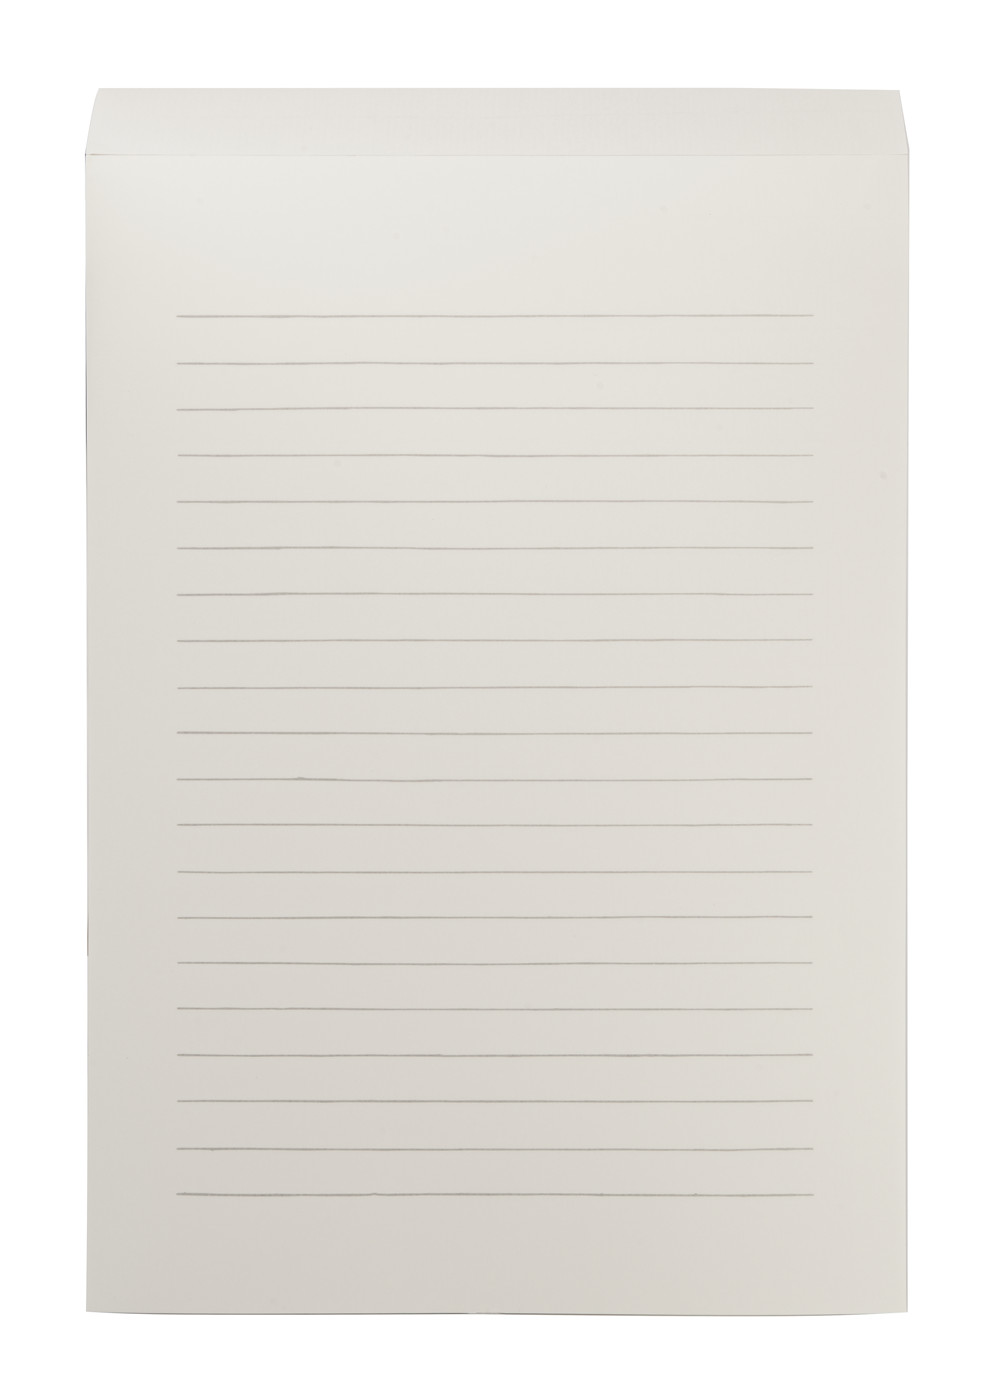 Life Stationery L. Writing Paper B5